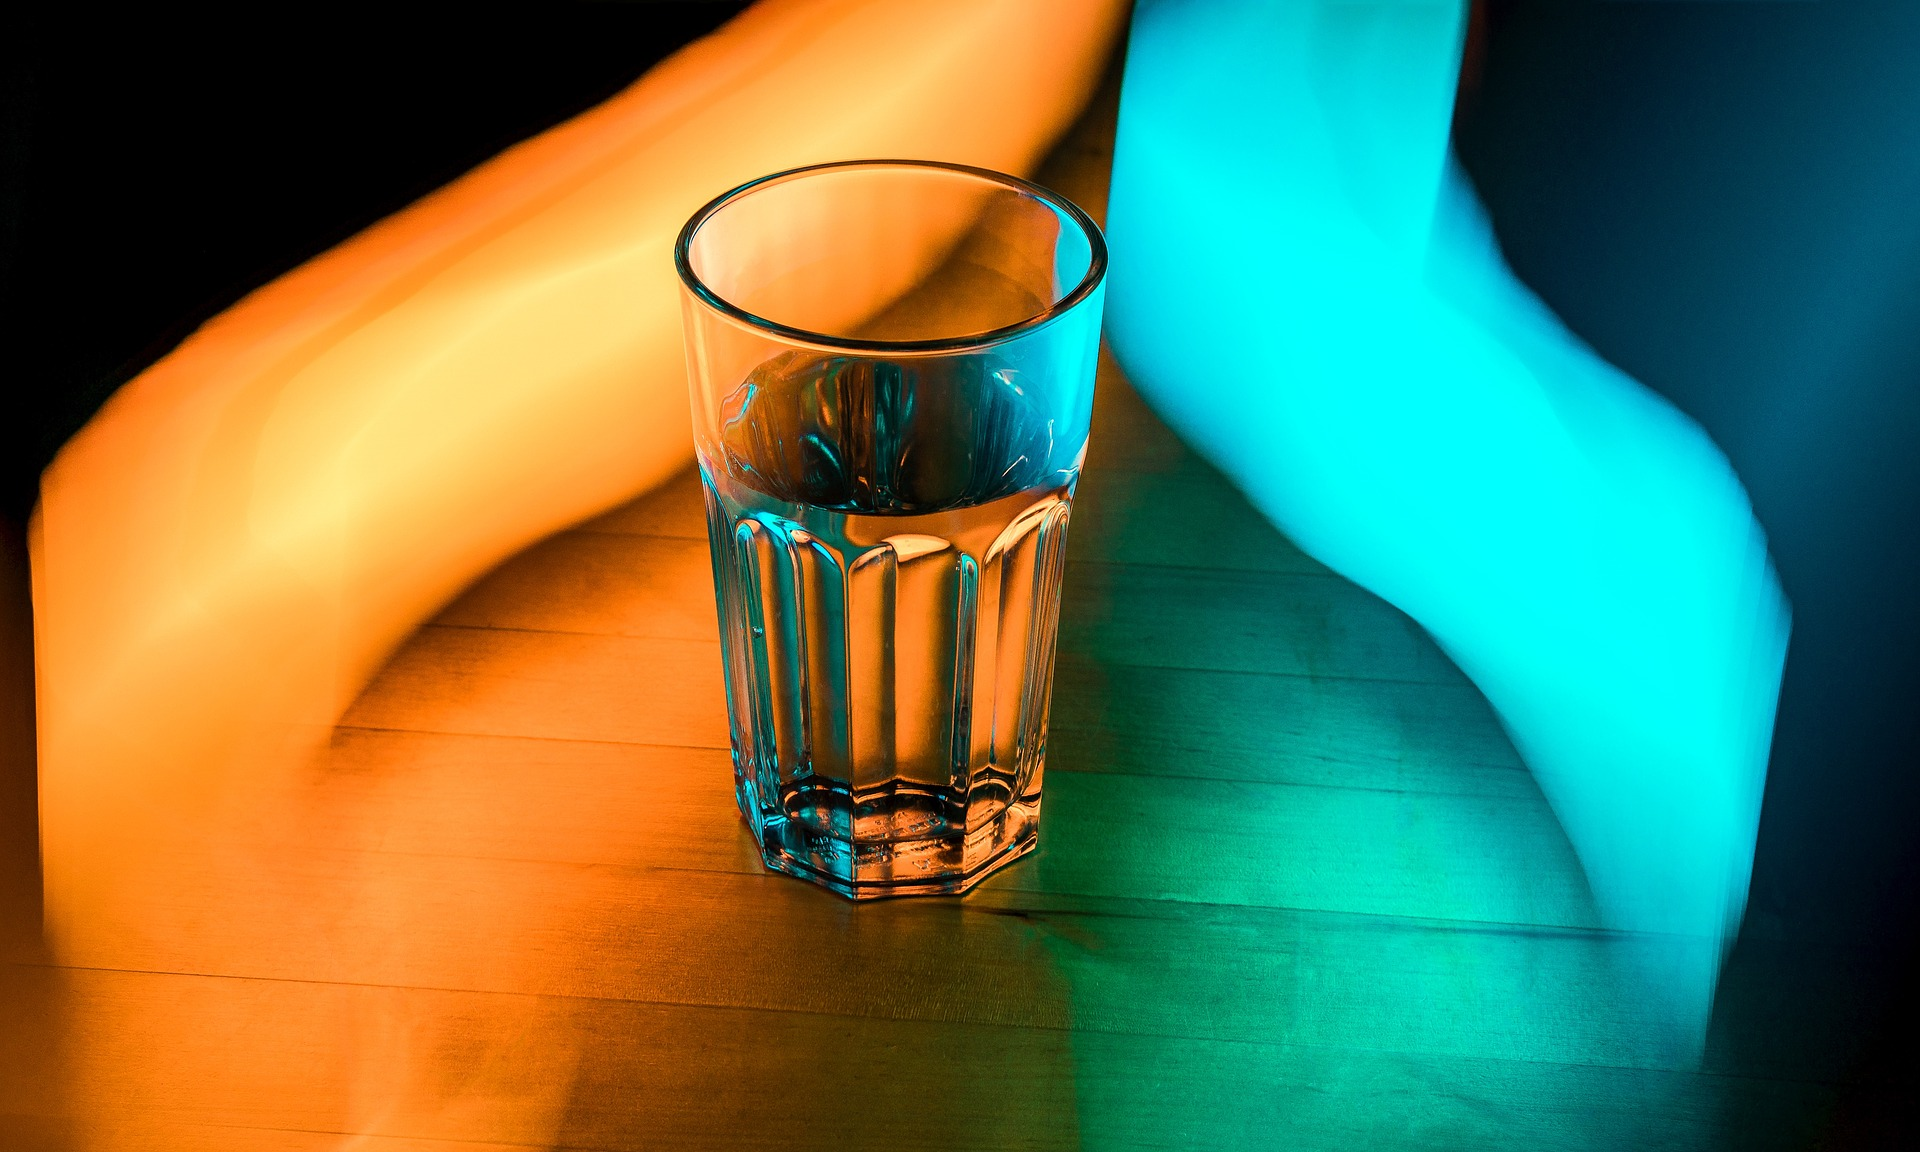 A glass of water sits on a wooden surface in between glowing orange and blue trails of light